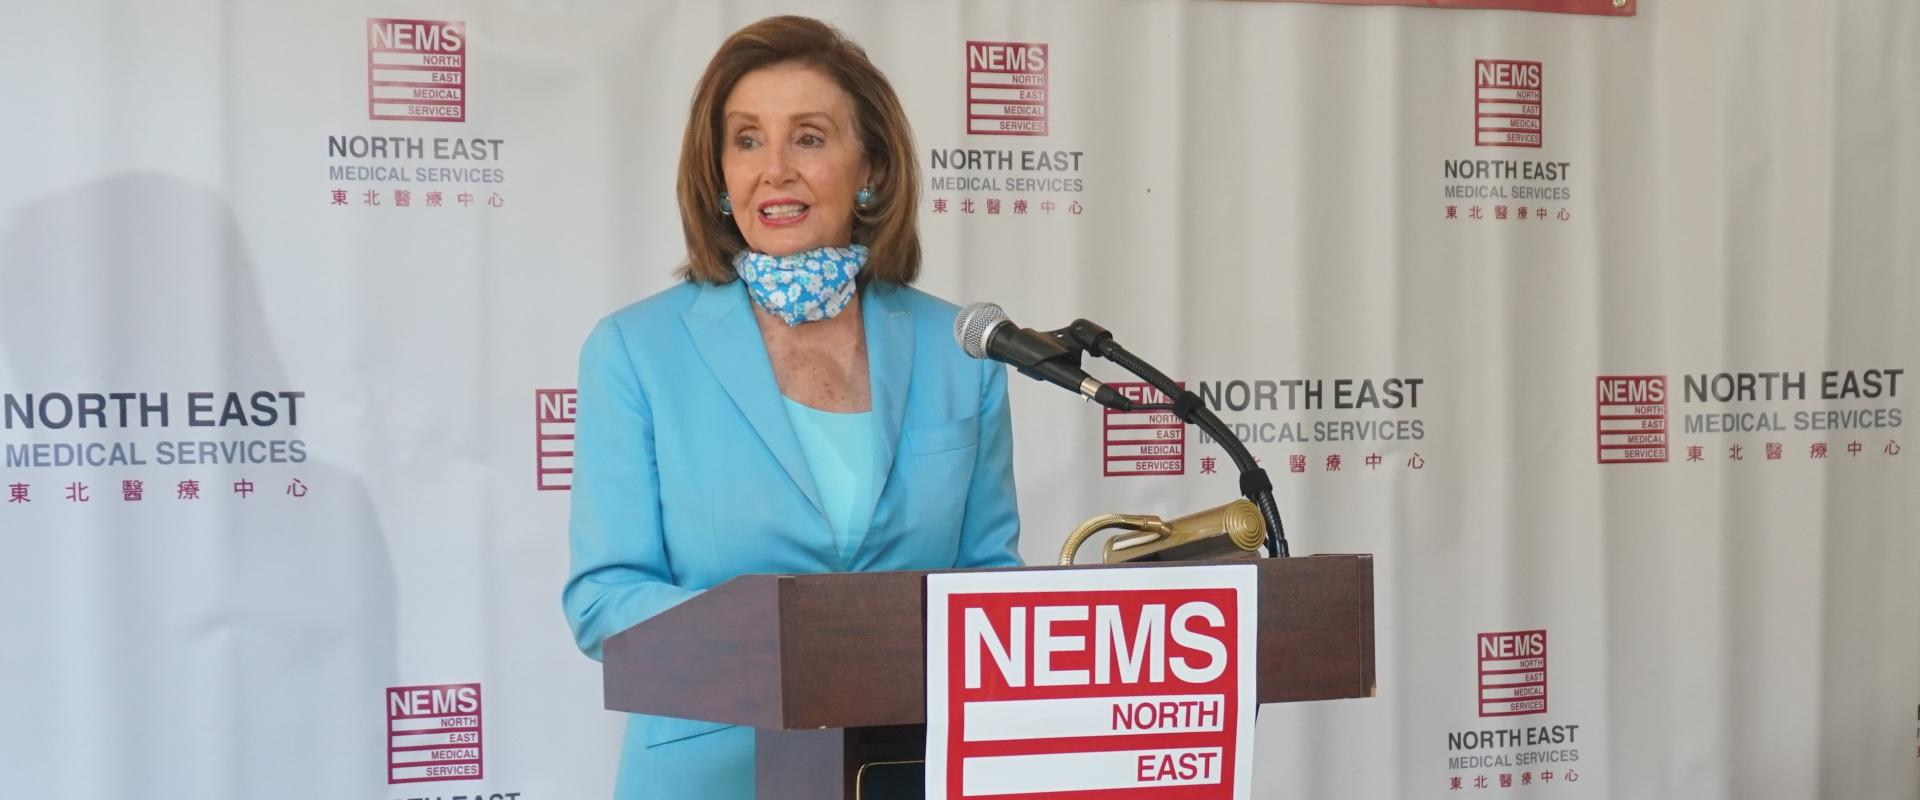 Congresswoman Nancy Pelosi joined Public Health Director Dr. Grant Colfax and Dr. Kenneth Tai of North East Medical Services (NEMS) at the NEMS PACE Clinic in Chinatown to highlight the life-saving resources contained in President Biden's American Rescue